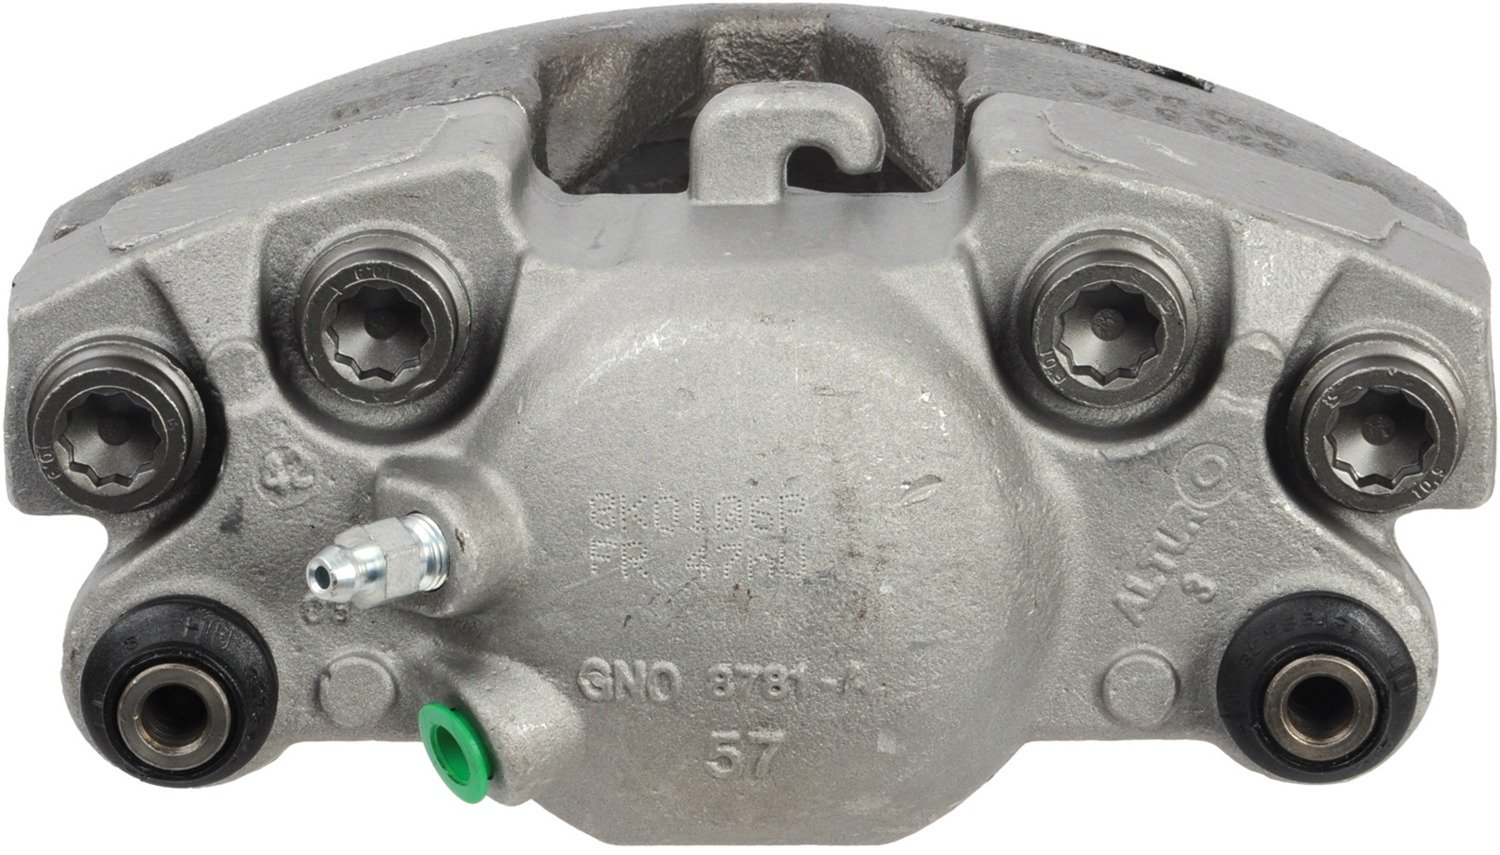 Brake Caliper Unloaded Cardone 19-3647 Remanufactured Import Friction Ready